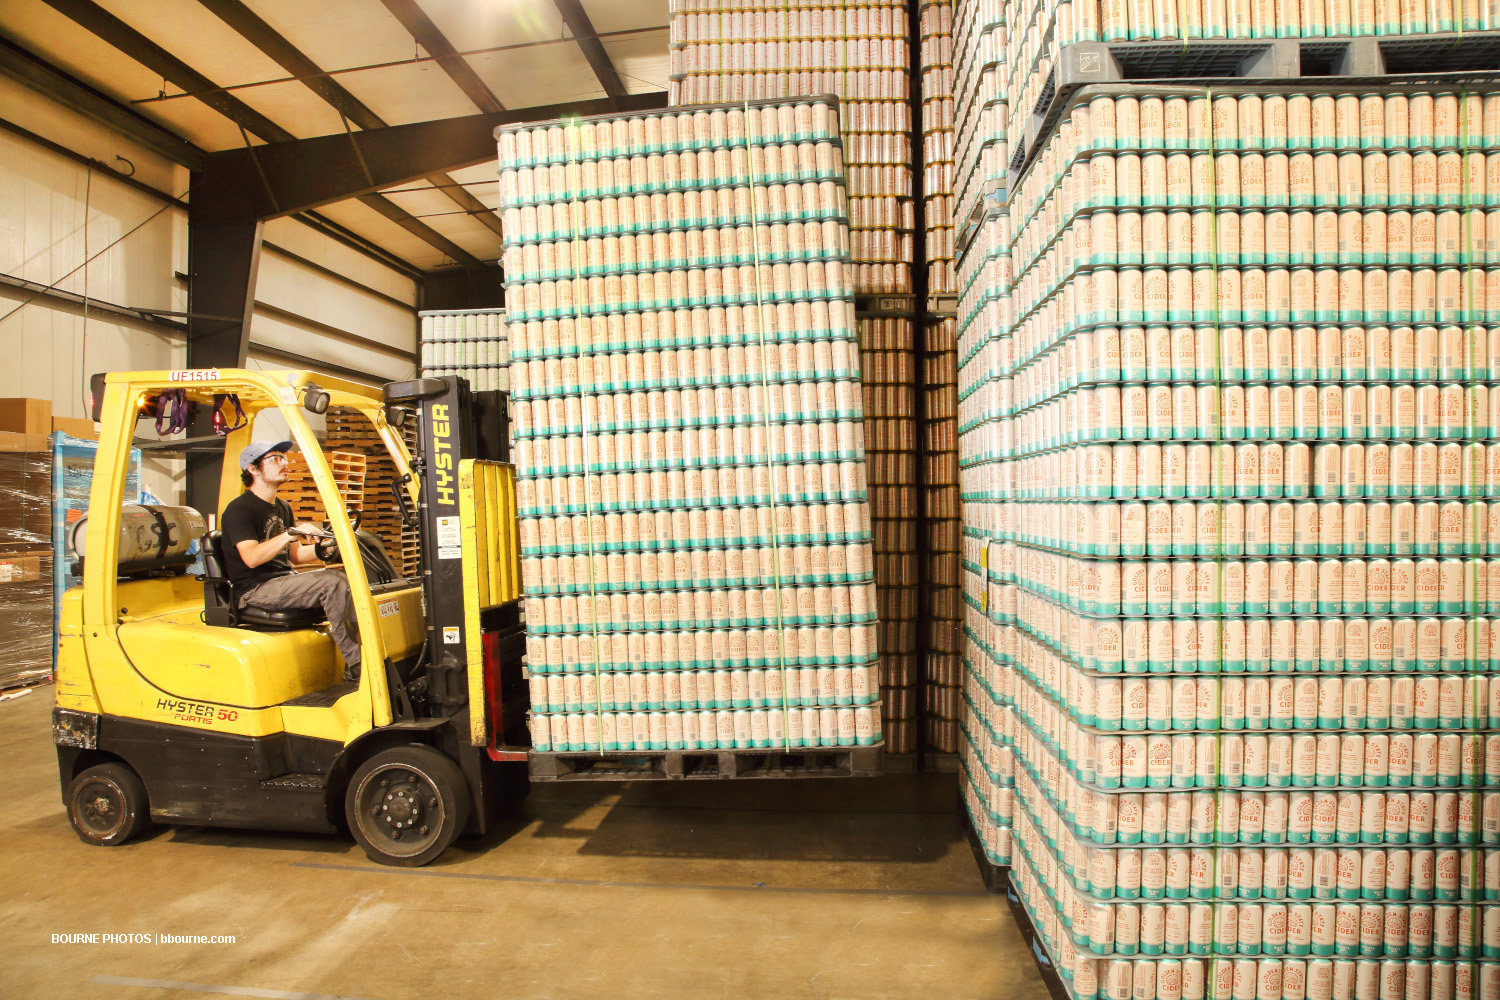 stacked cans of golden state cider on palettes being moved by a forklift in a warehouse.